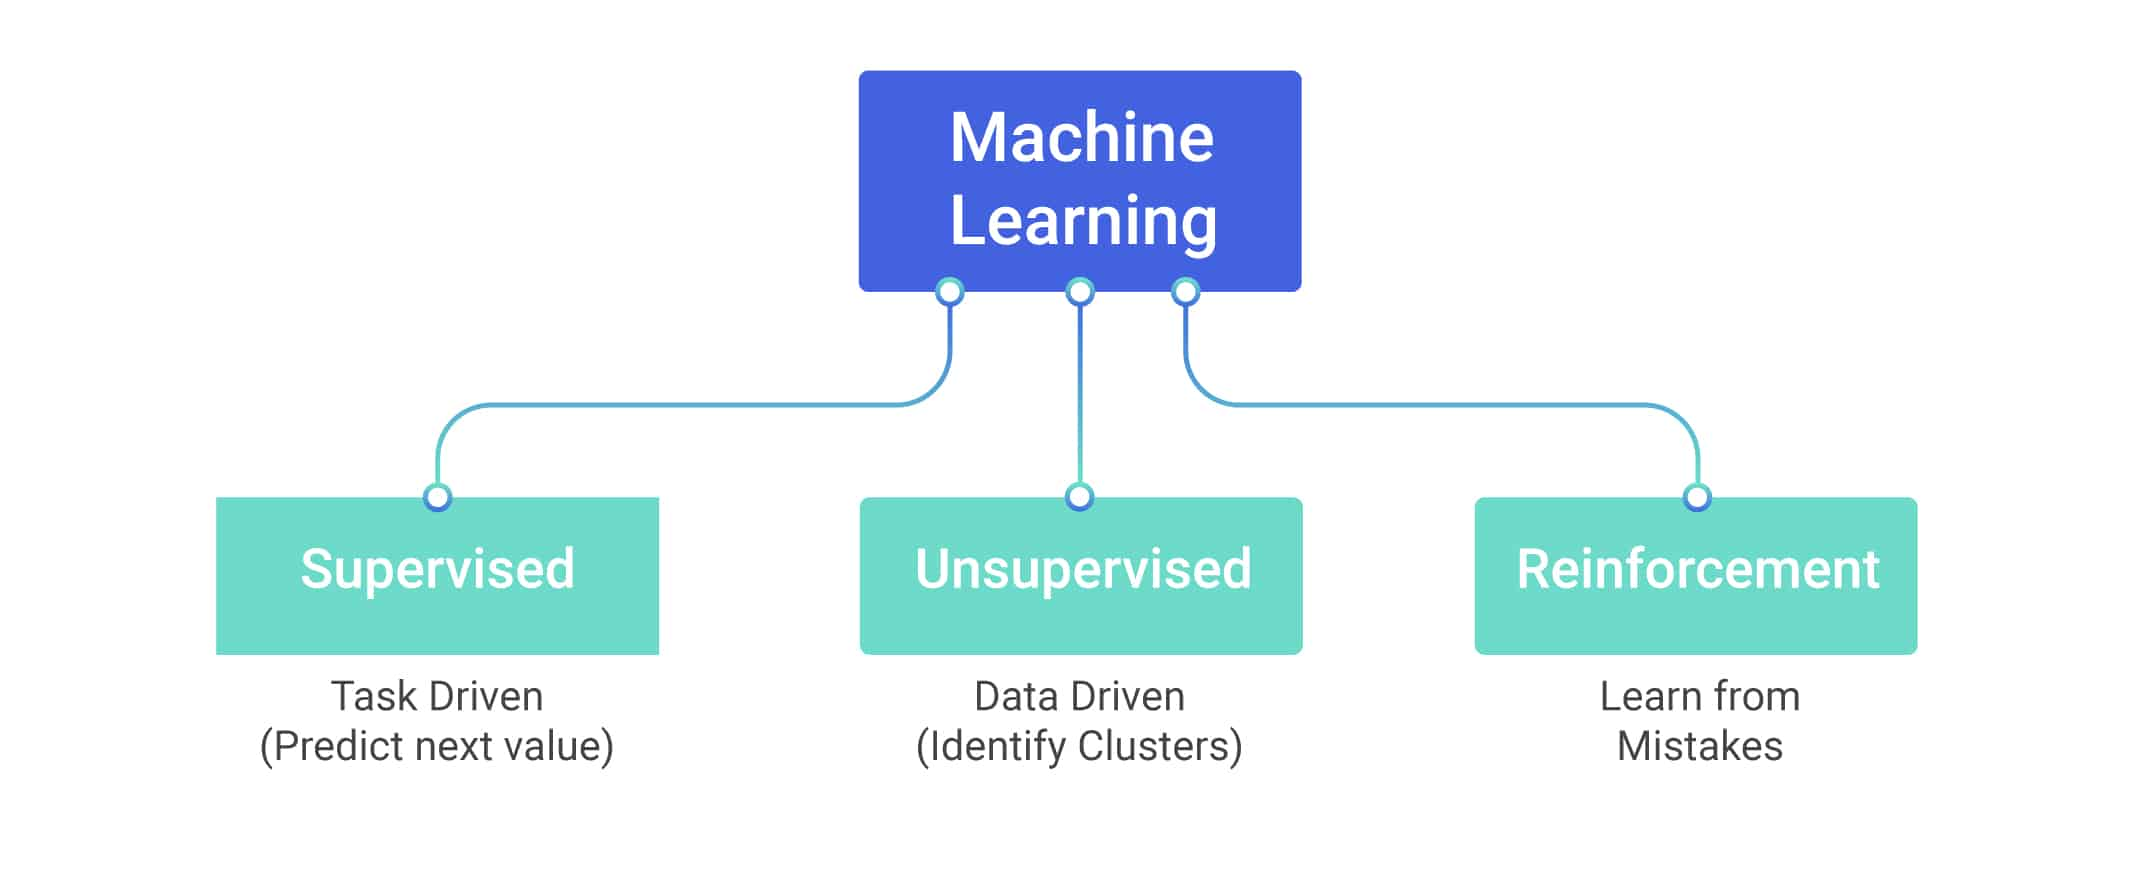 Supervised Learning, Unsupervised Learning, and Reinforcement Learning